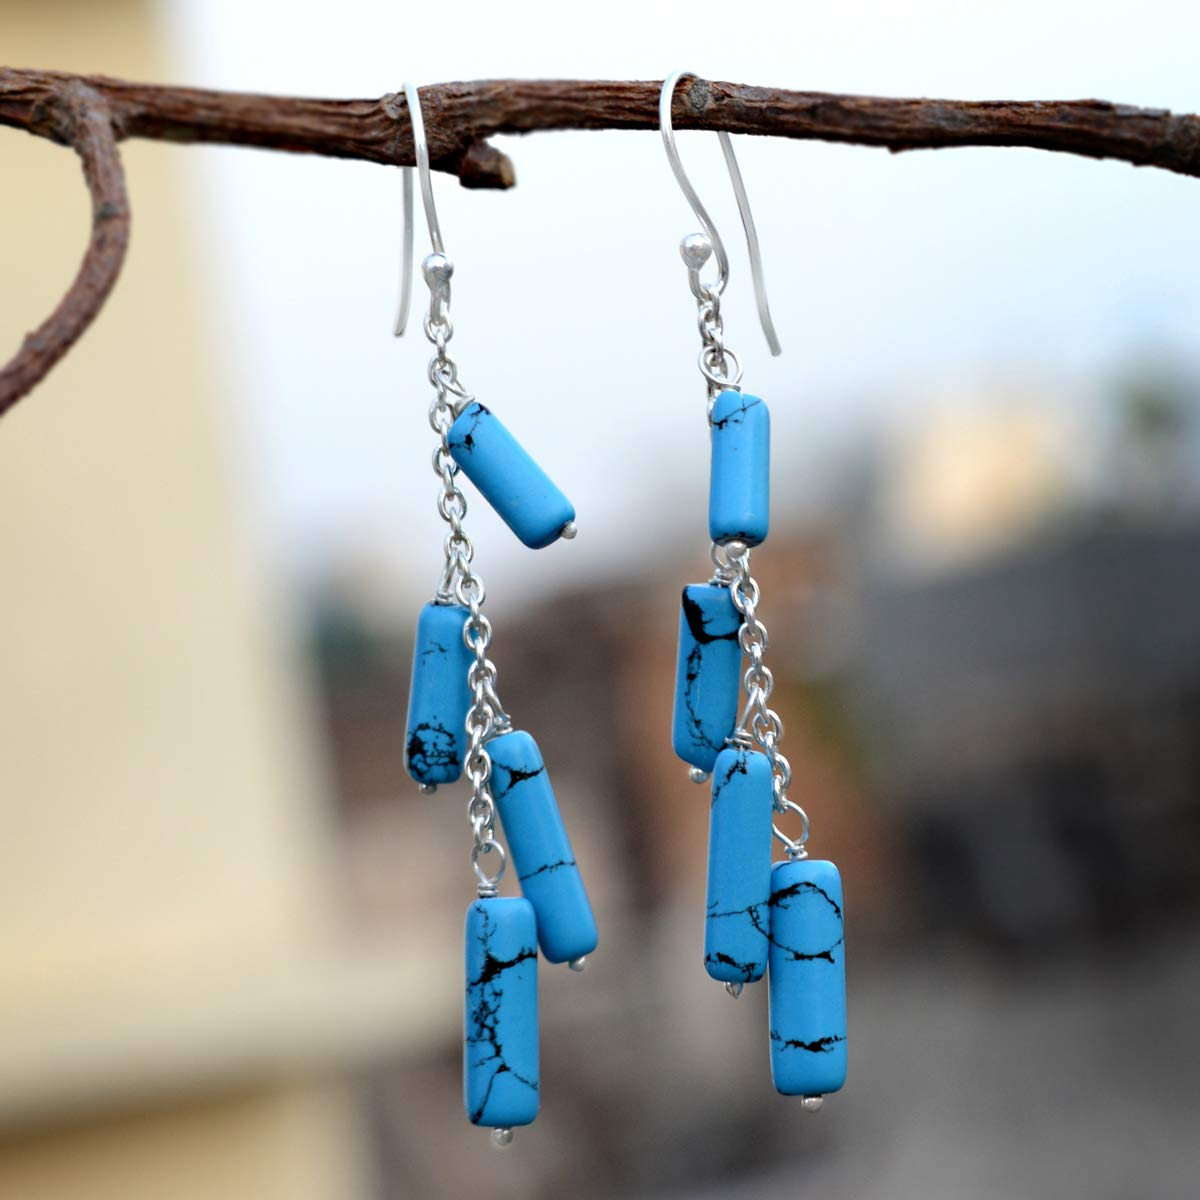 Rolo-chain Dangle Earring Jaipur Rajasthan India Handmade Jewelry Manufacturer Blue Turquoise 925 Sterling Silver